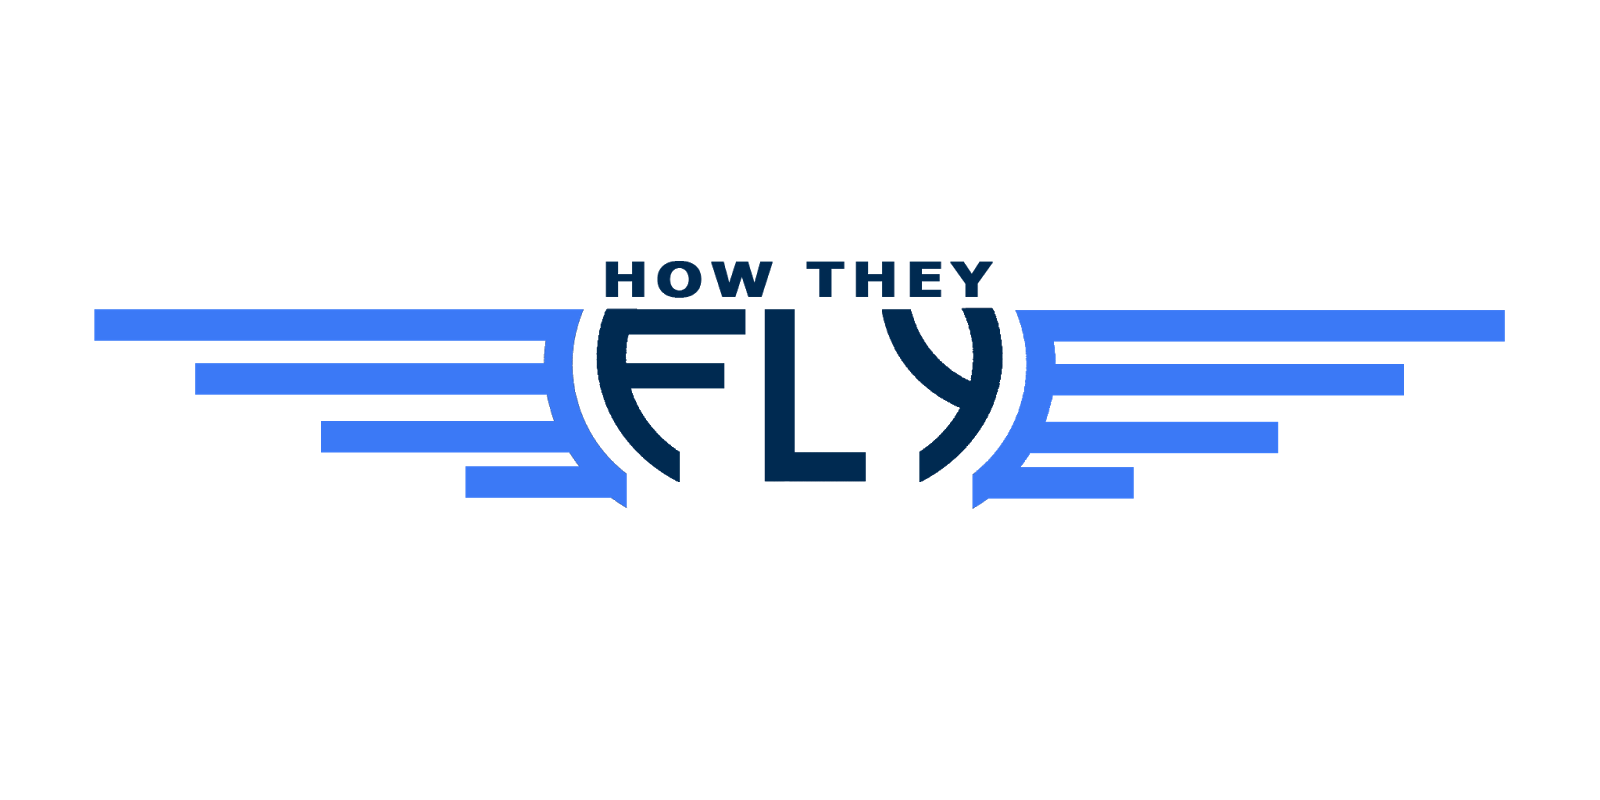 How They Fly